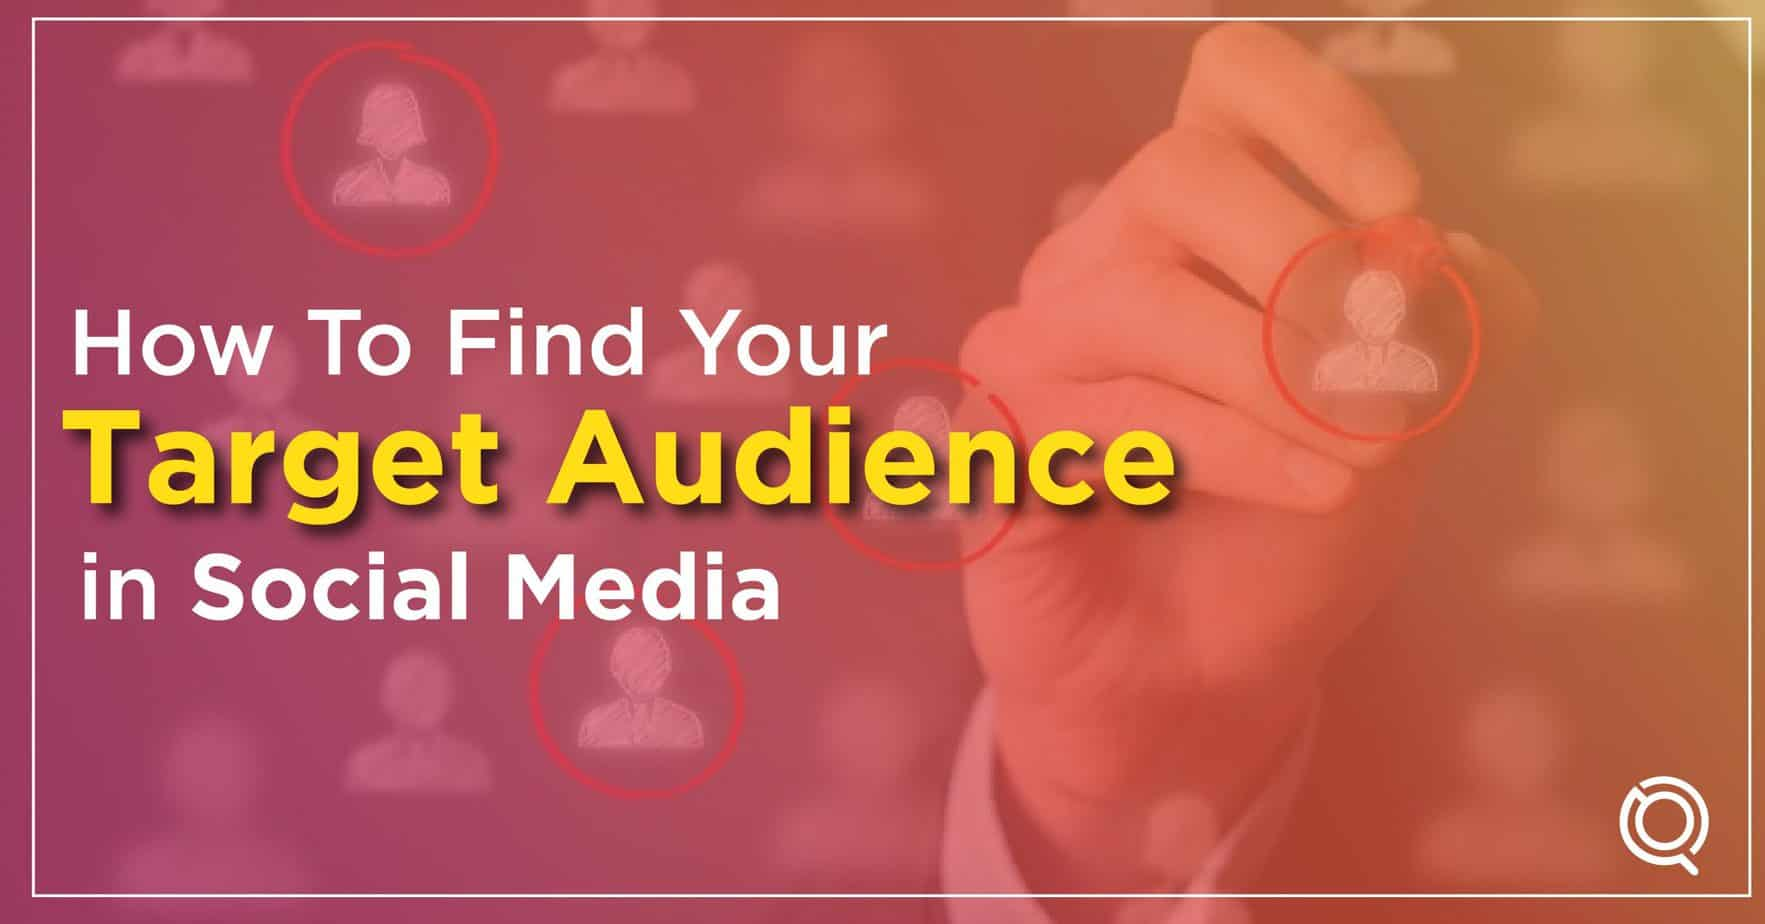 How to Find Your Social Media Target Audience - One Search Pro Digital Marketing Agency